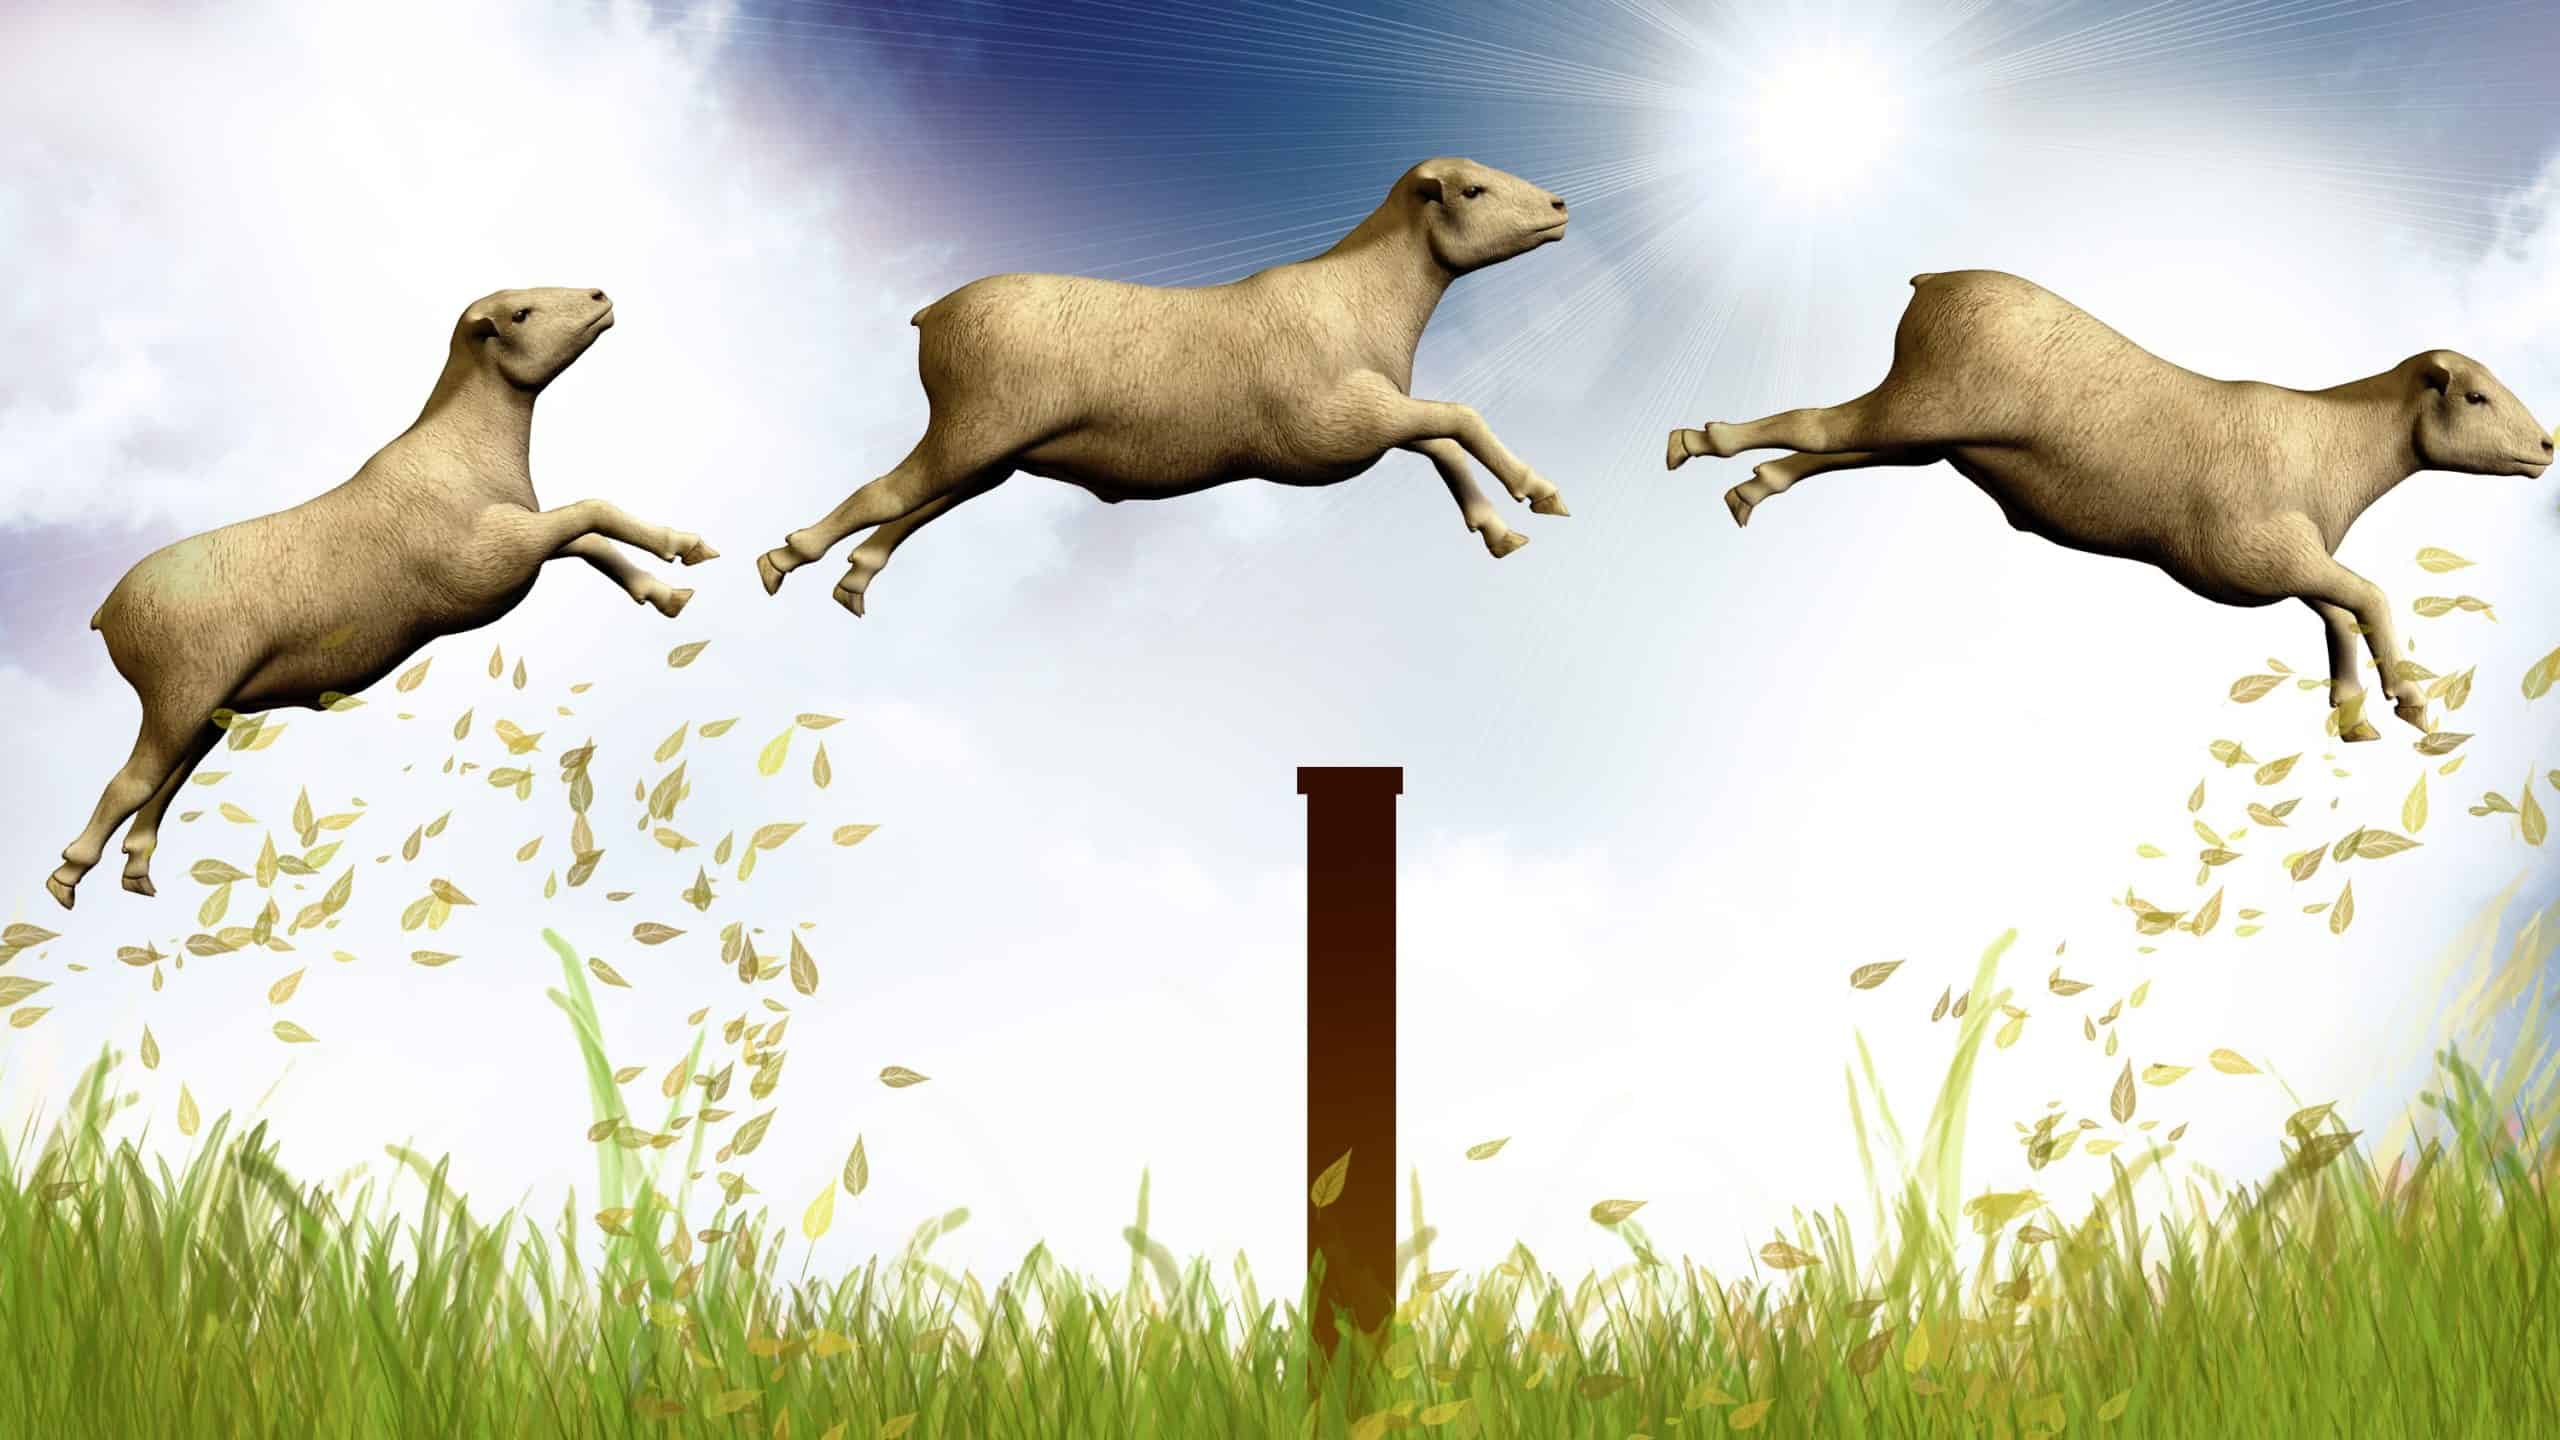 sheep leaping over a pole representing leaping elders share price